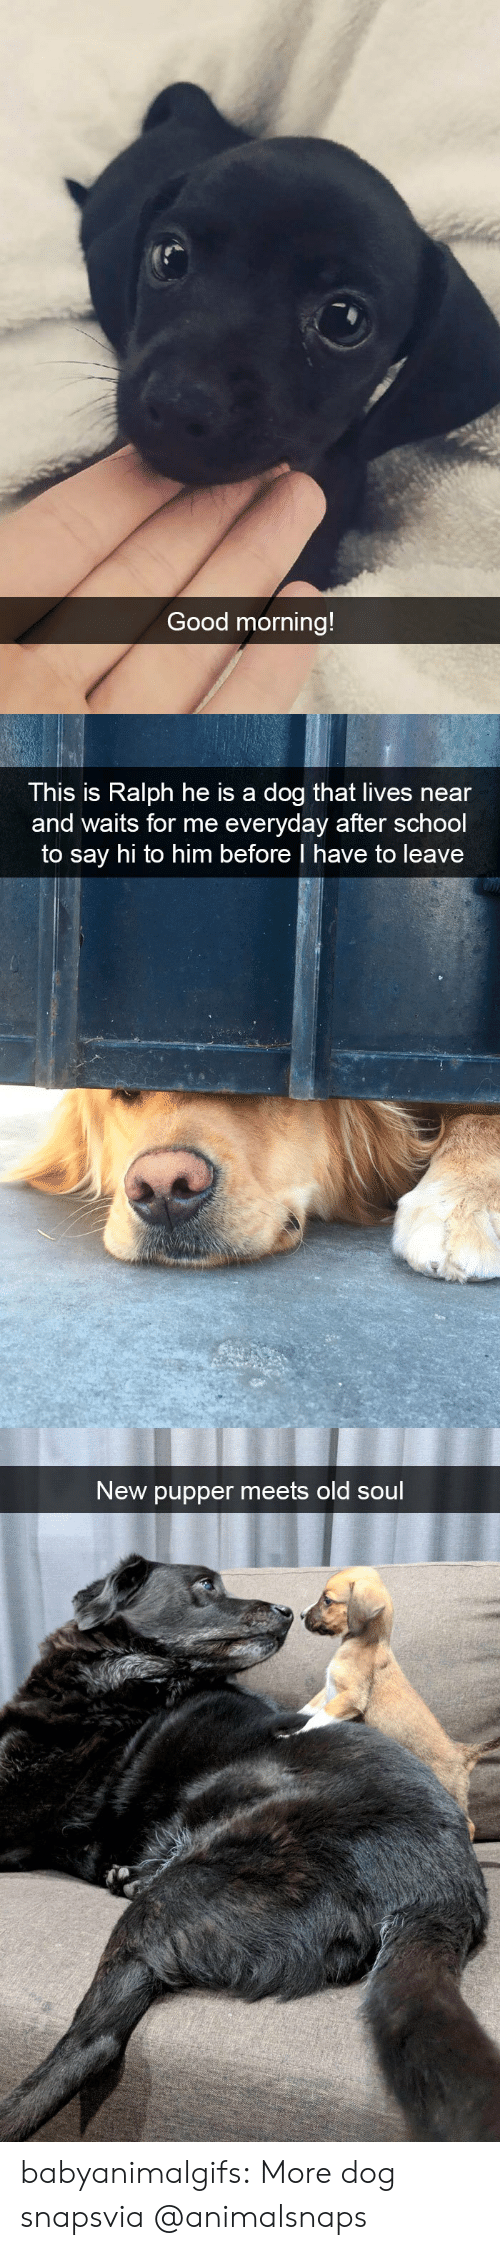 old soul: Good morning!   This is Ralph he is a dog that lives near  and waits for me everyday after school  to say hi to him before I have to leave   New pupper meets old soul babyanimalgifs:  More dog snapsvia @animalsnaps​